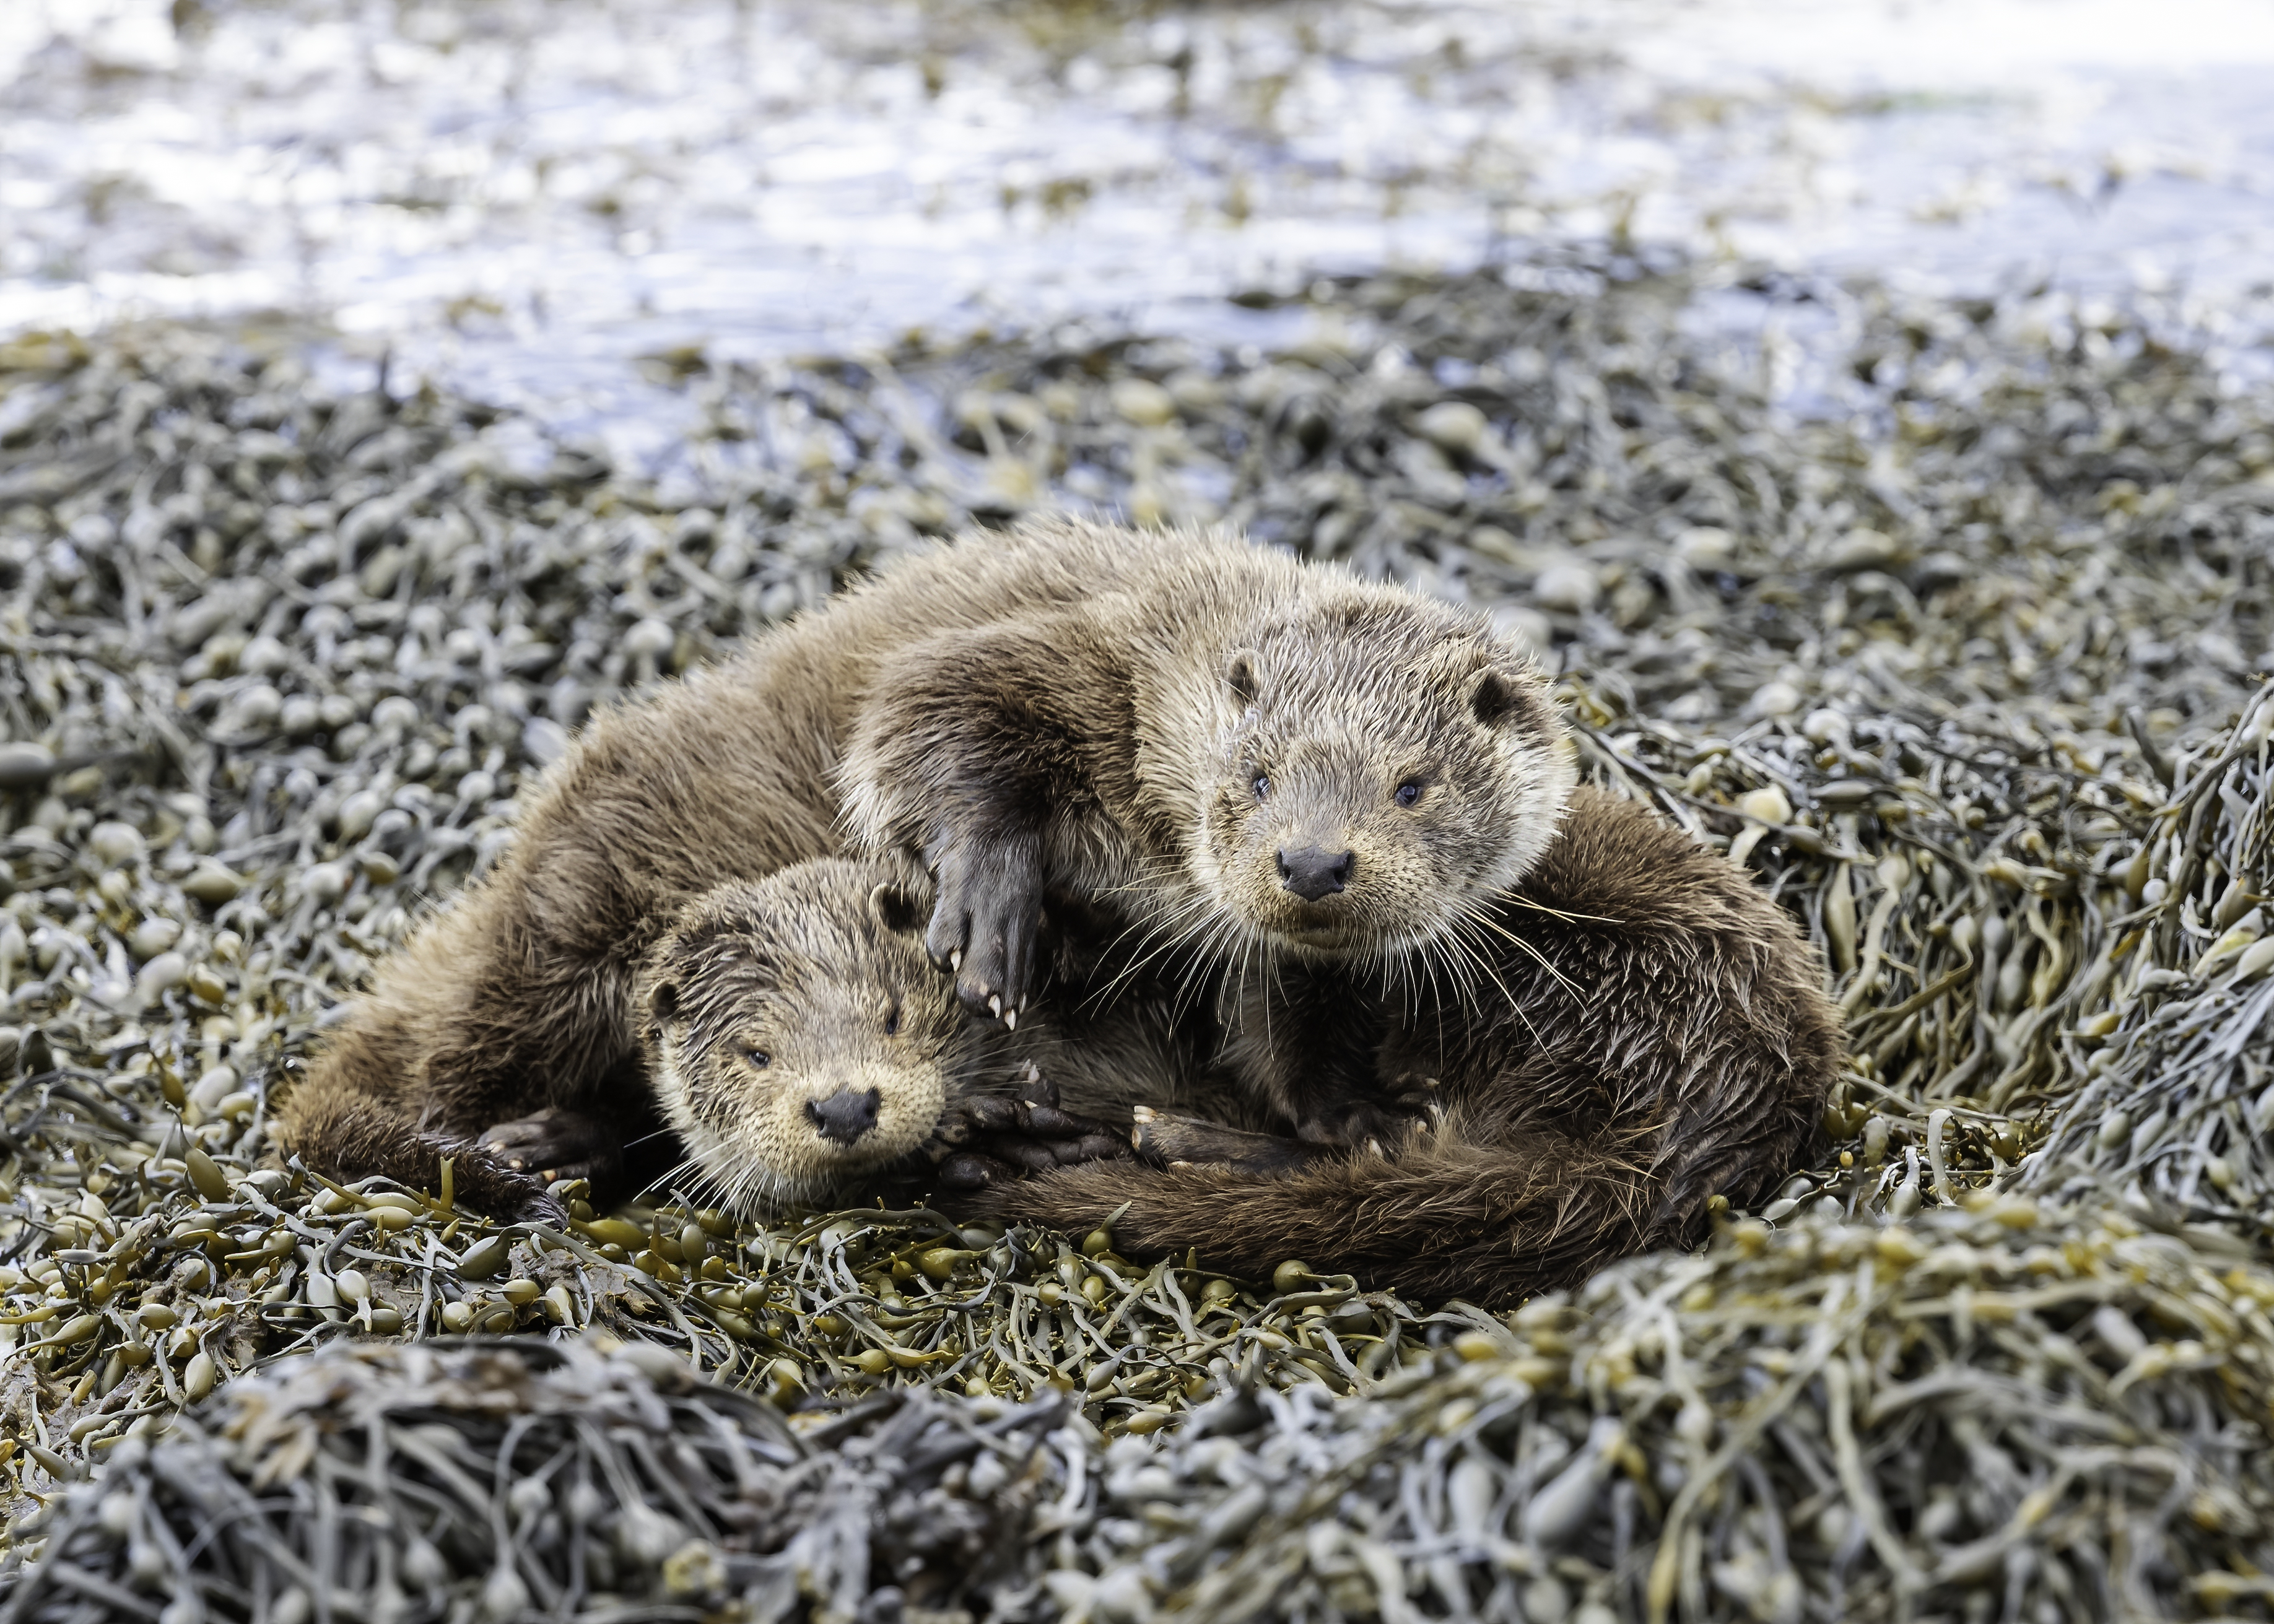 Otter lying on top of cub